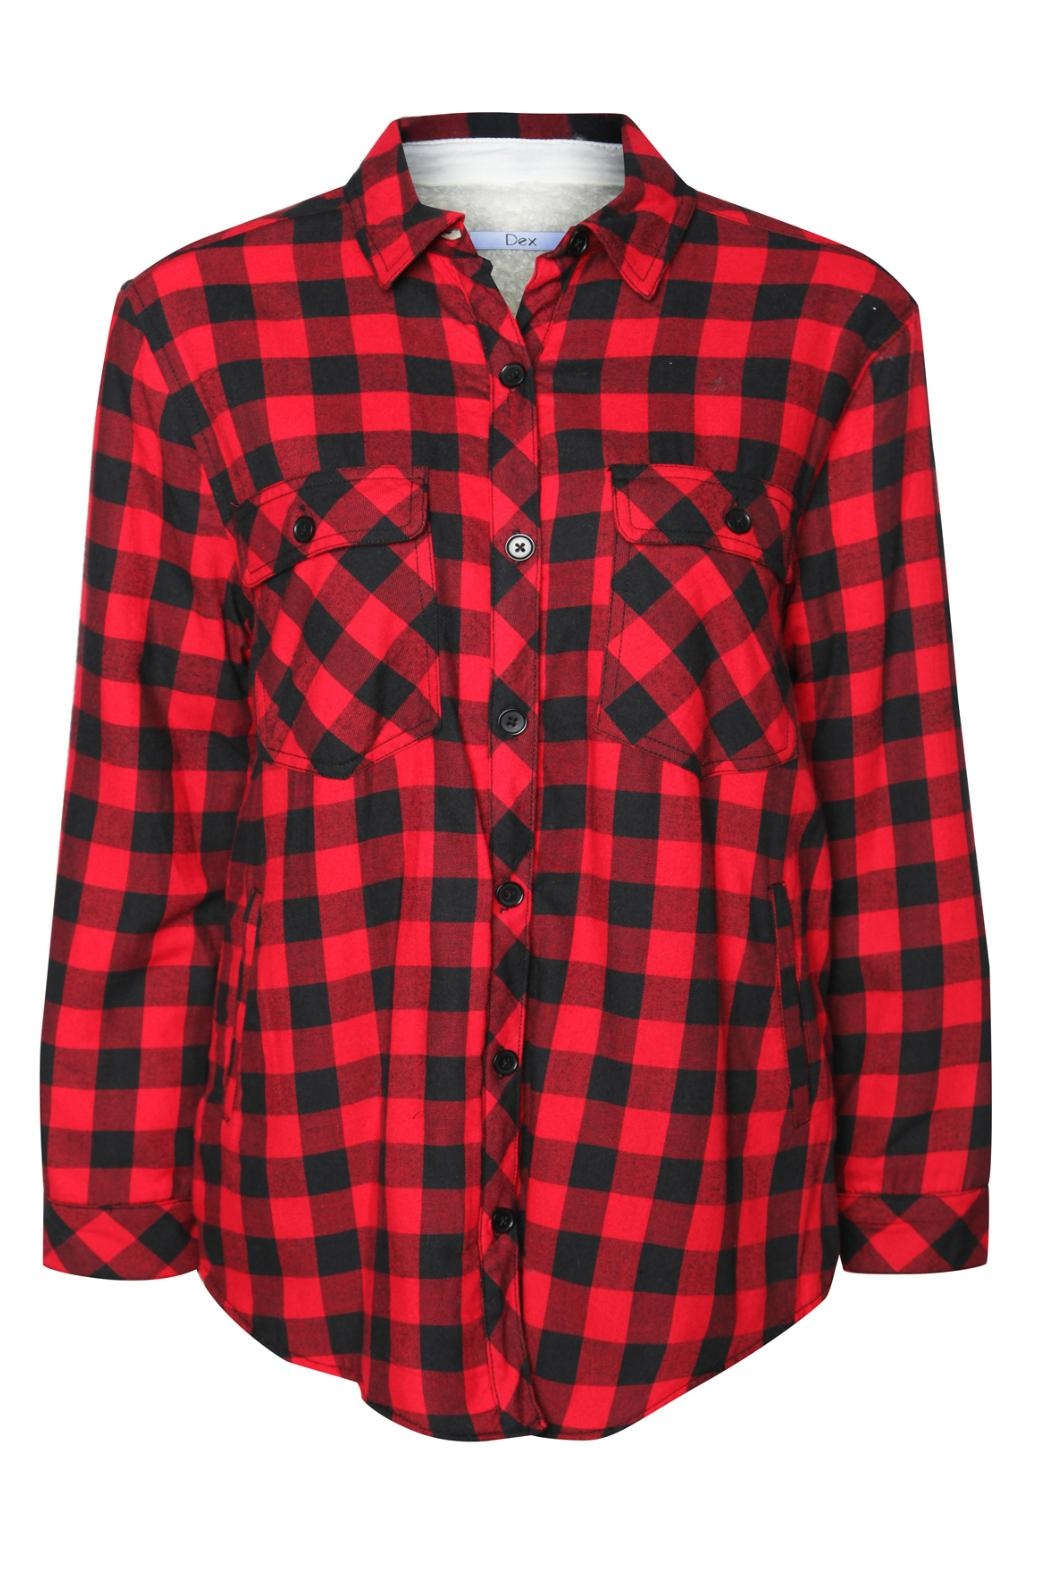 Dex Buffalo Check Fleecy Jacket - Front Full Image